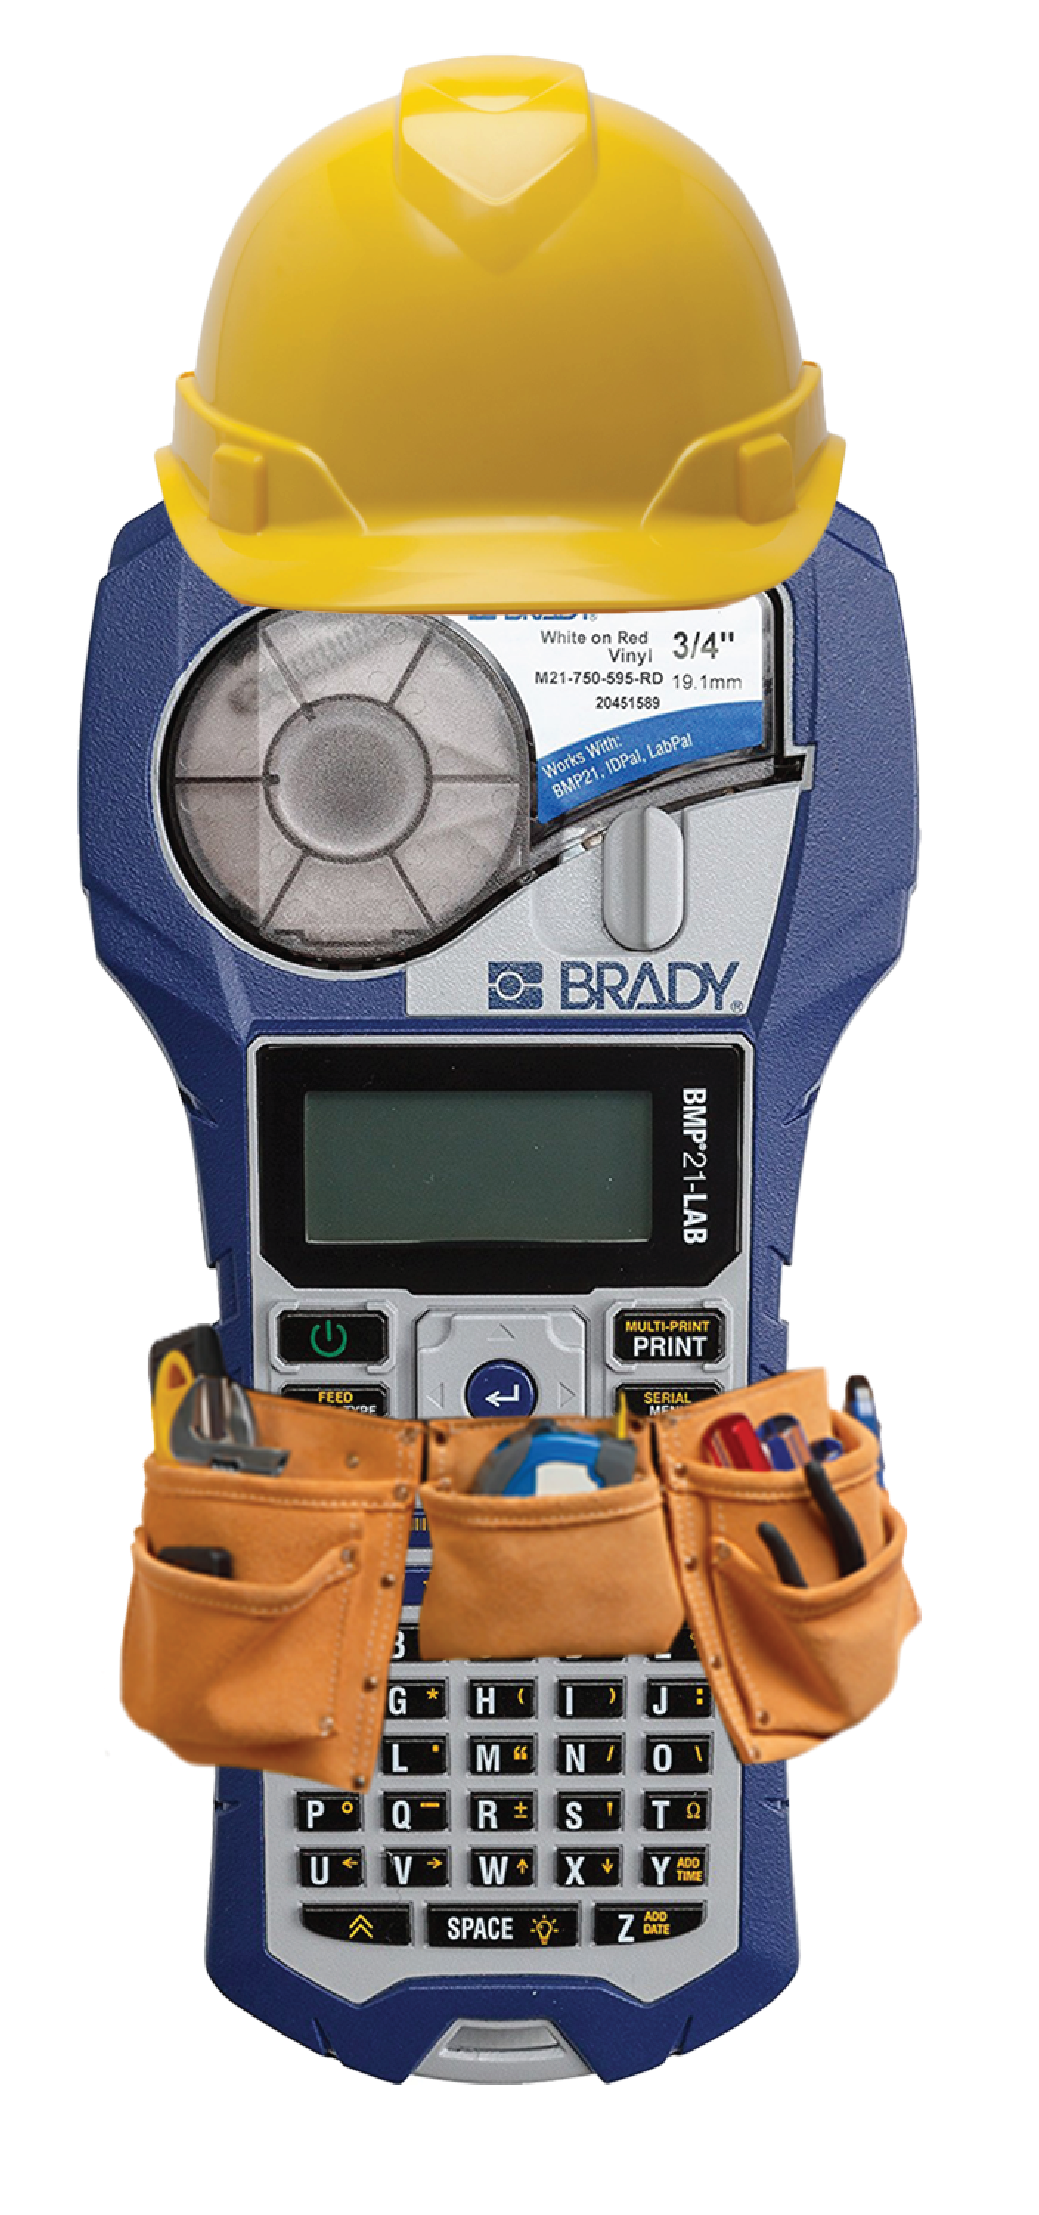 Scott Electric Brady Label Printer